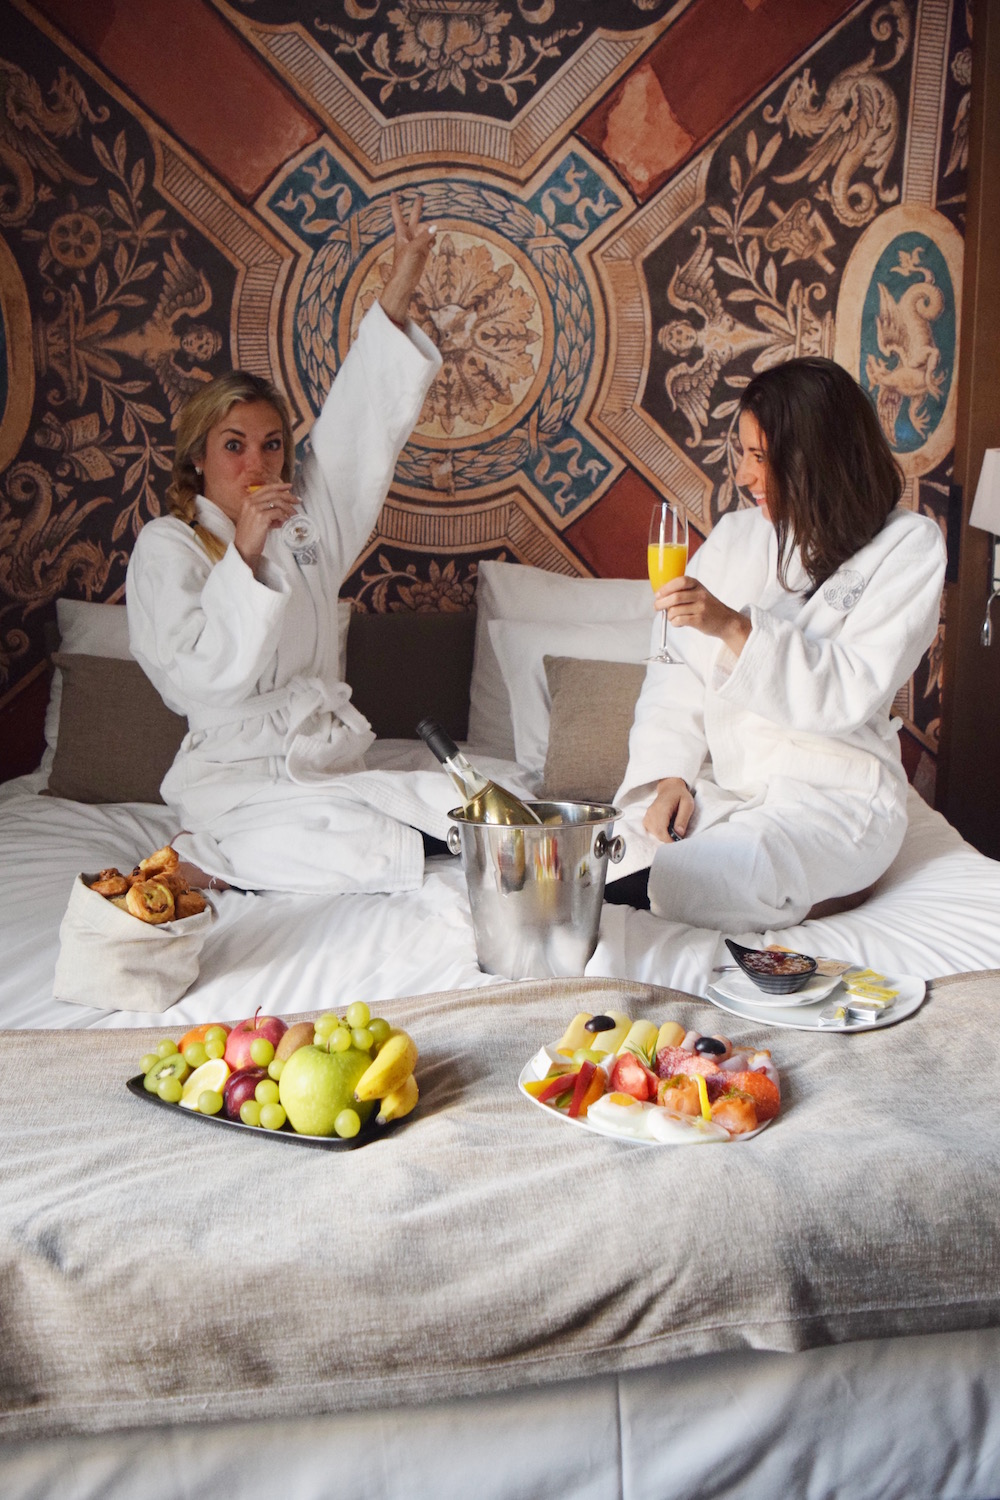 Breakfast in Bed | Hotel Moments Budapest